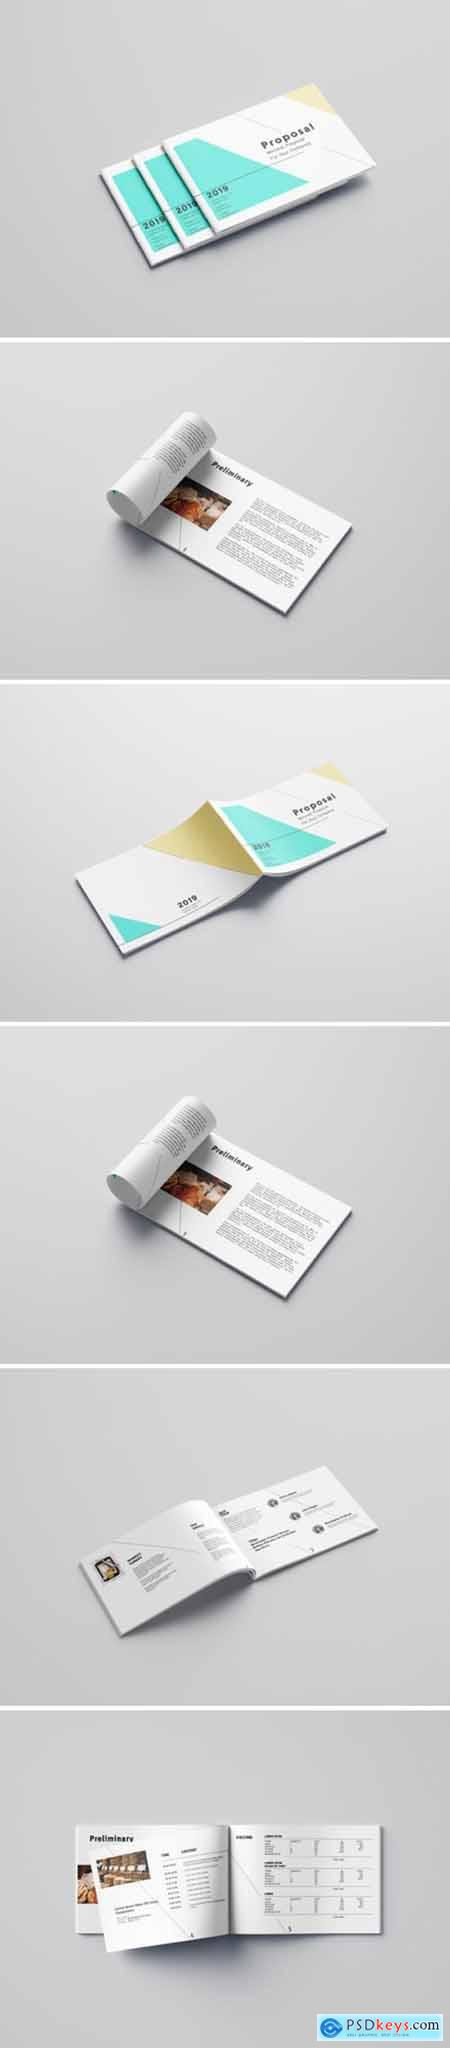 Minimalist Proposal Template Design 2013813